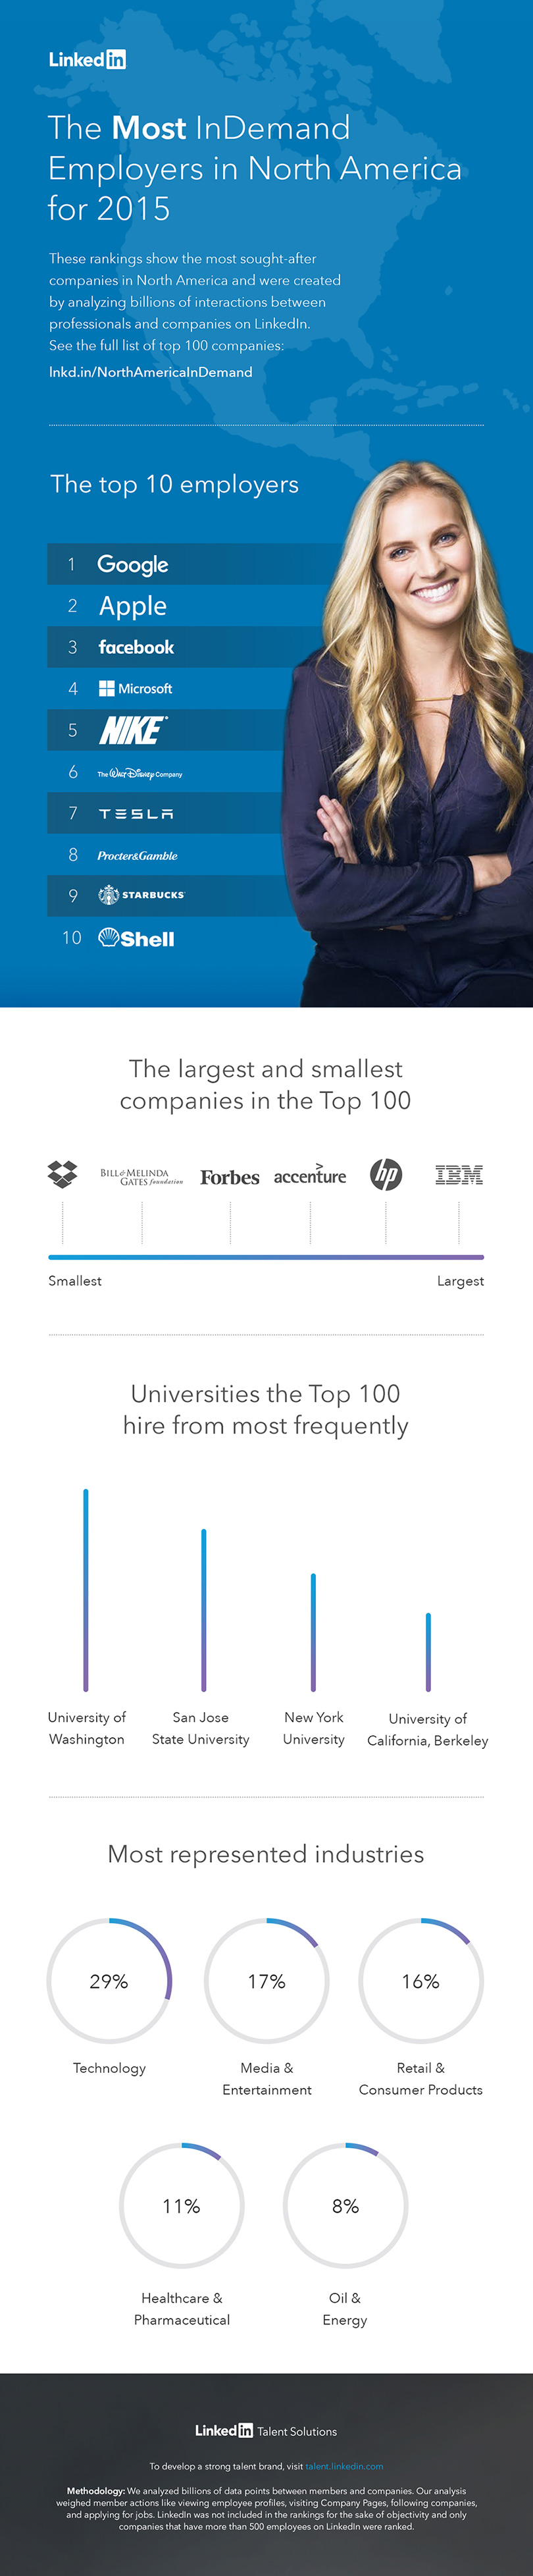 2015 Most InDemand Employers North America